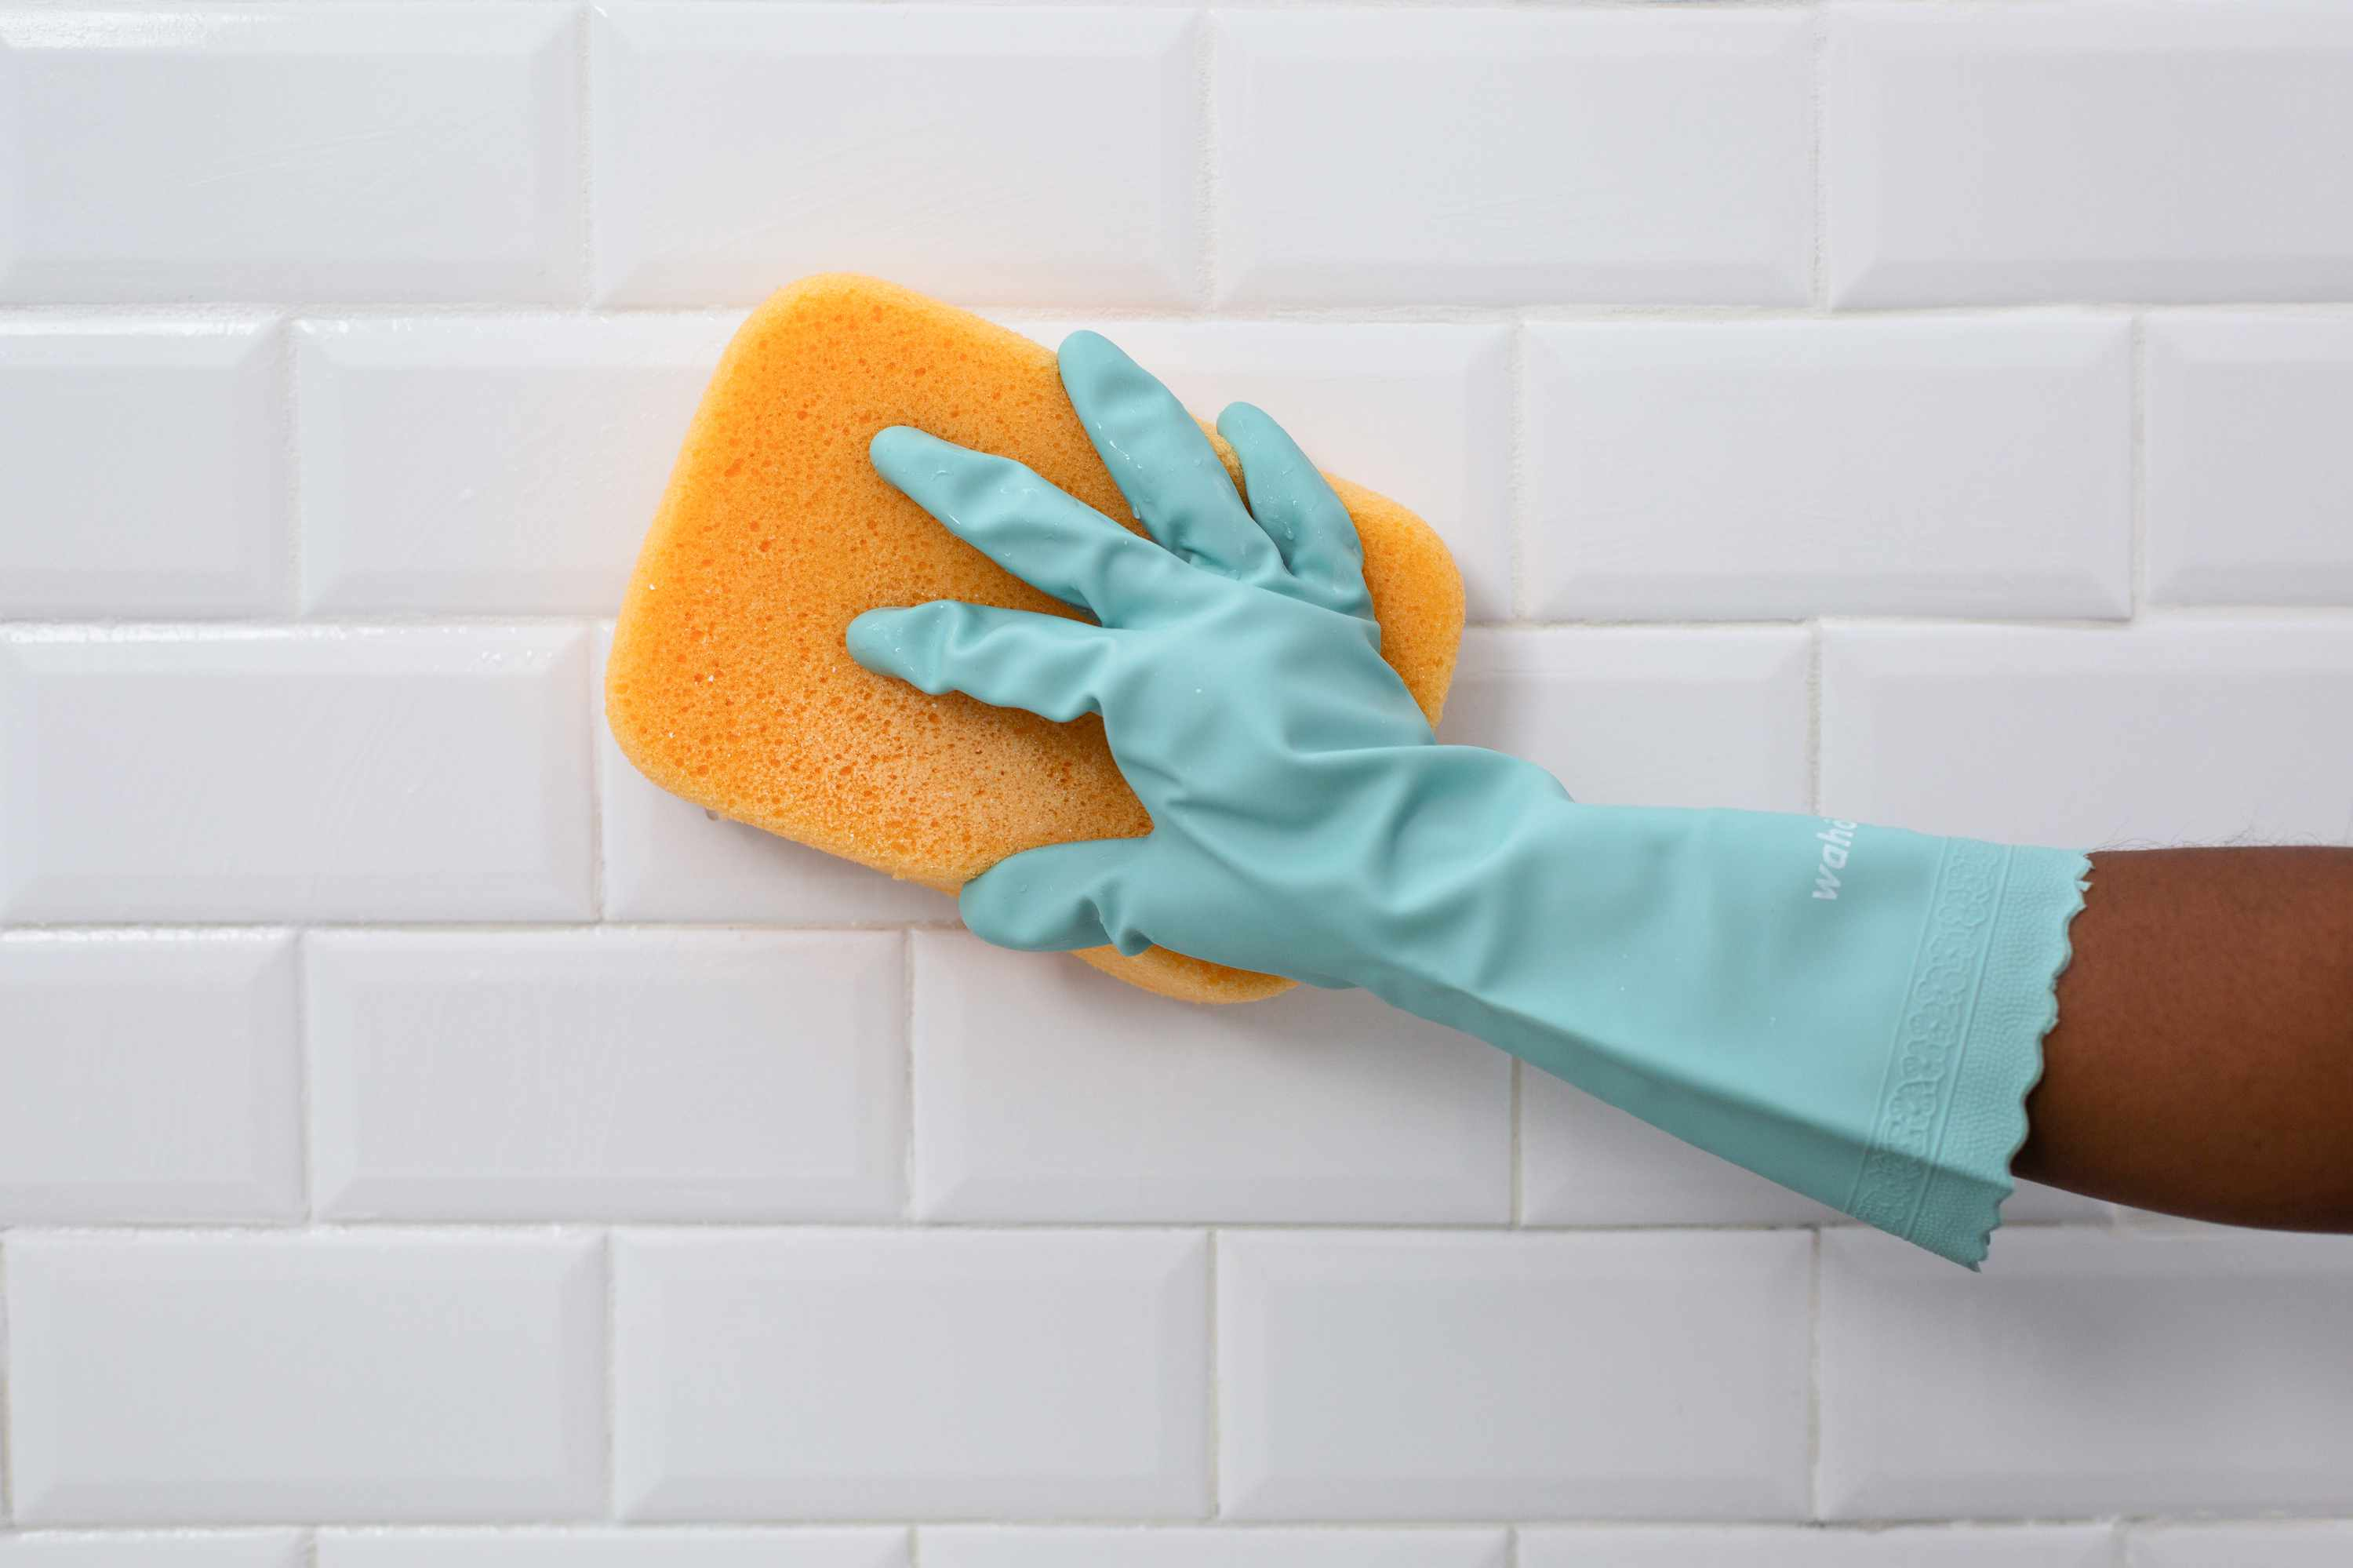 White tiled wall rinsed off with yellow sponge wearing teal gloves